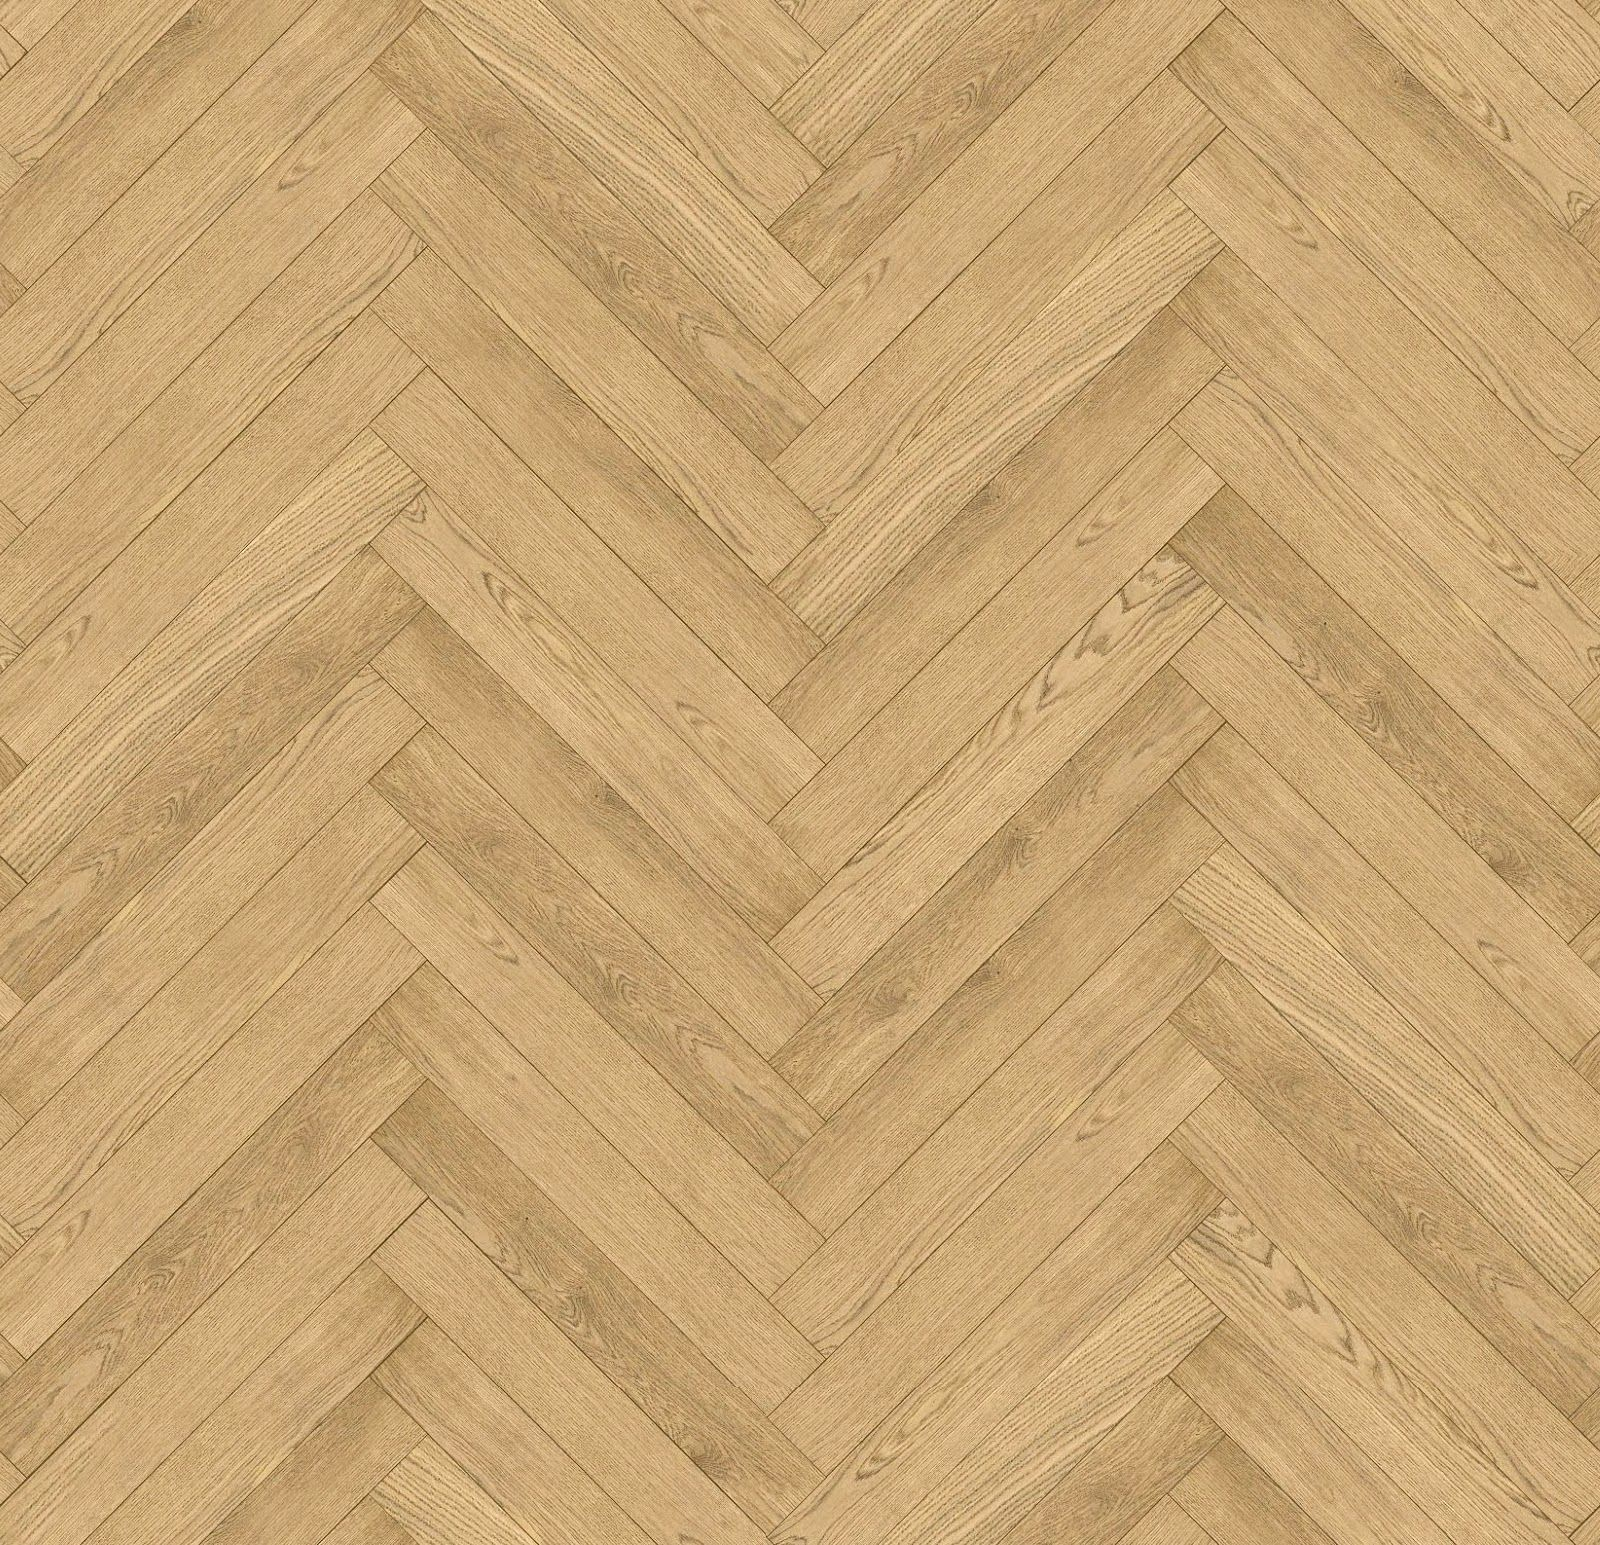 Seamless Wood Parquet Texture    Maps    texturise. Seamless Wood Parquet Texture    Maps    texturise   Timber